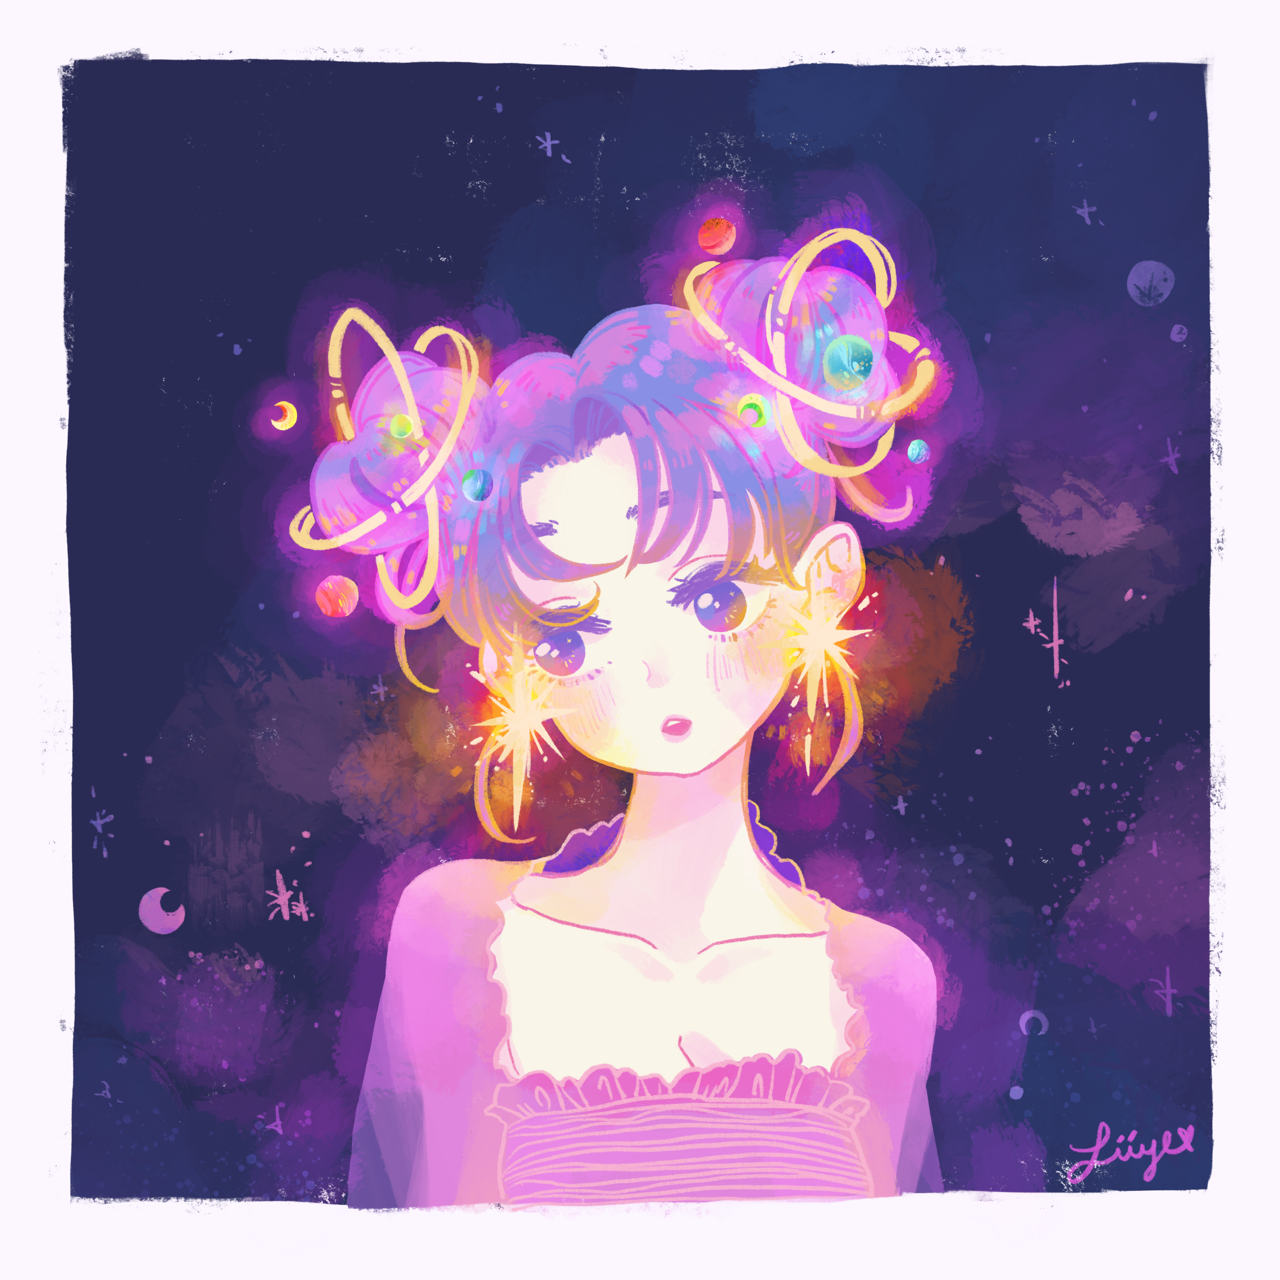 Space Buns By Zii Ye On Tumblr Anime Iphone Wallpaper Illustration Cute Art